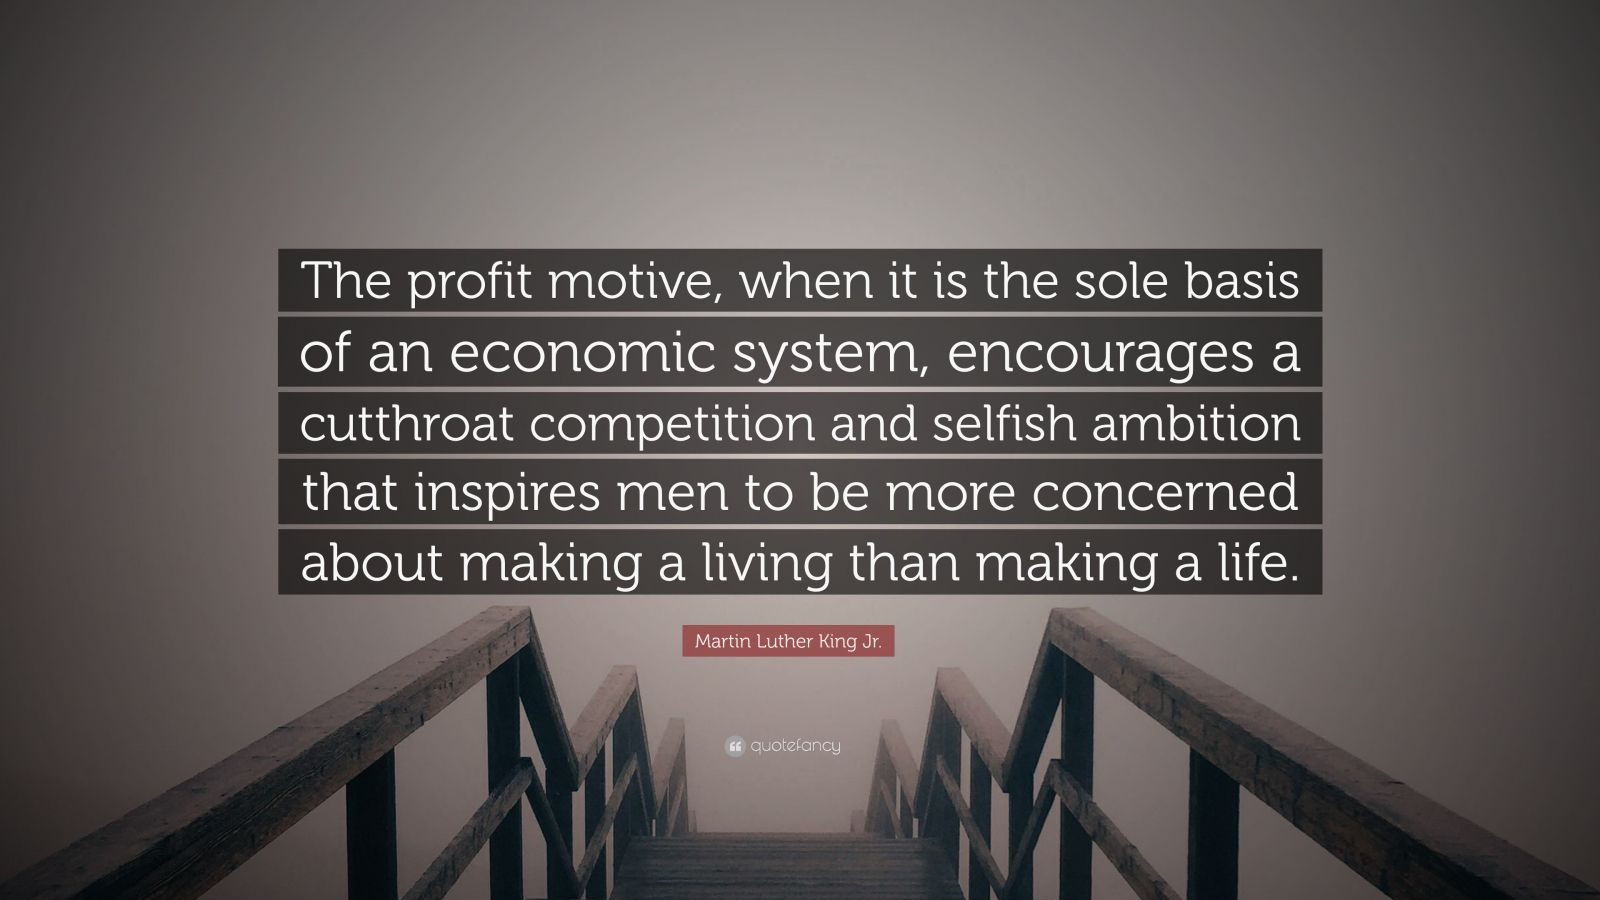 """Martin Luther King Jr. Quote: """"The profit motive, when it is the sole basis of an economic system, encourages a cutthroat competition and selfish ambition that inspires men to be more concerned about making a living than making a life."""""""